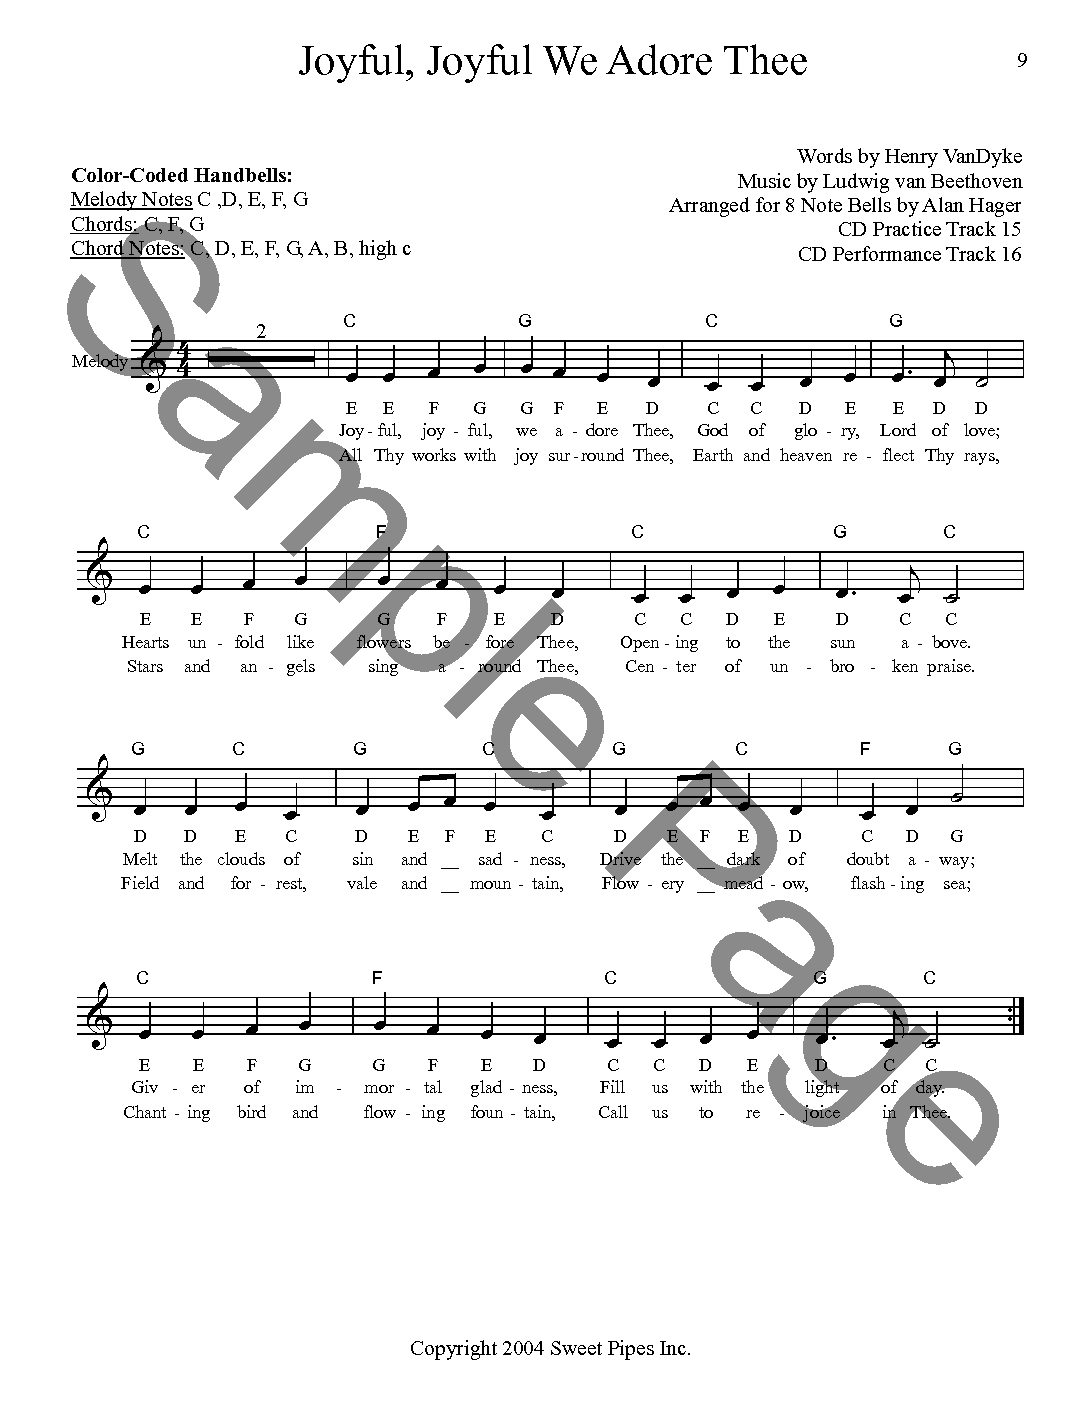 SP2397 Easy Hymns For 8 Note Bells by Alan Hager